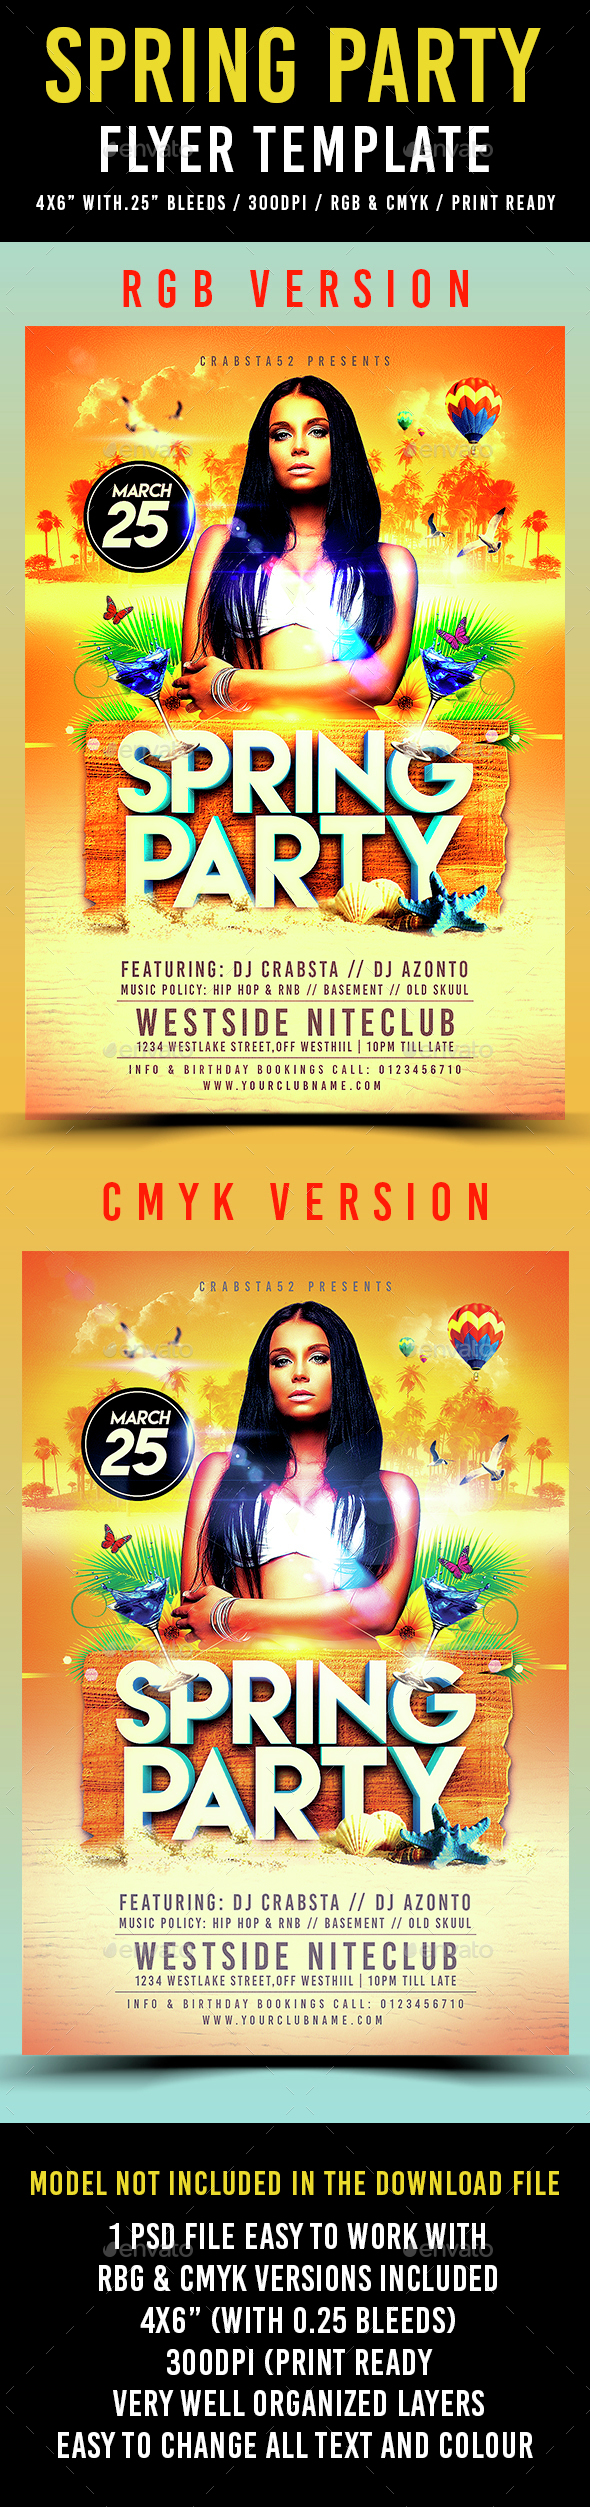 Spring Party Flyer Template - Flyers Print Templates